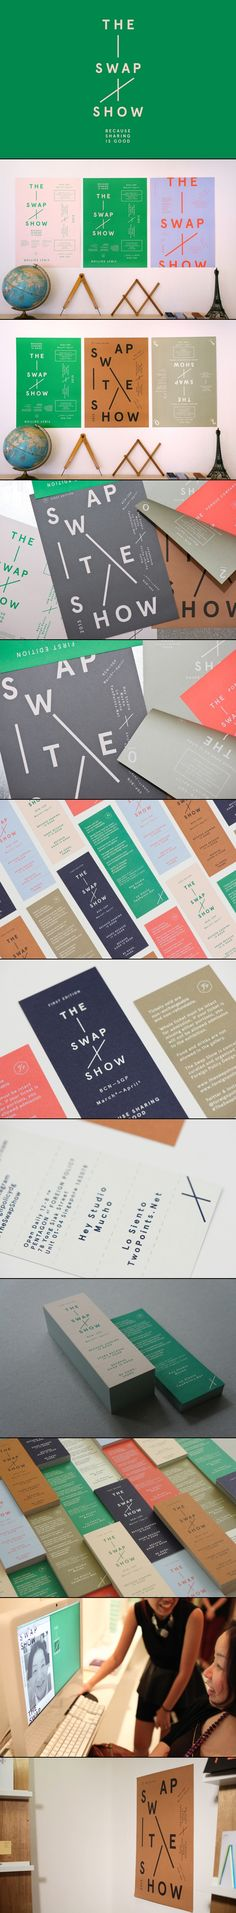 The Space Program by Foreign Policy , via Behance